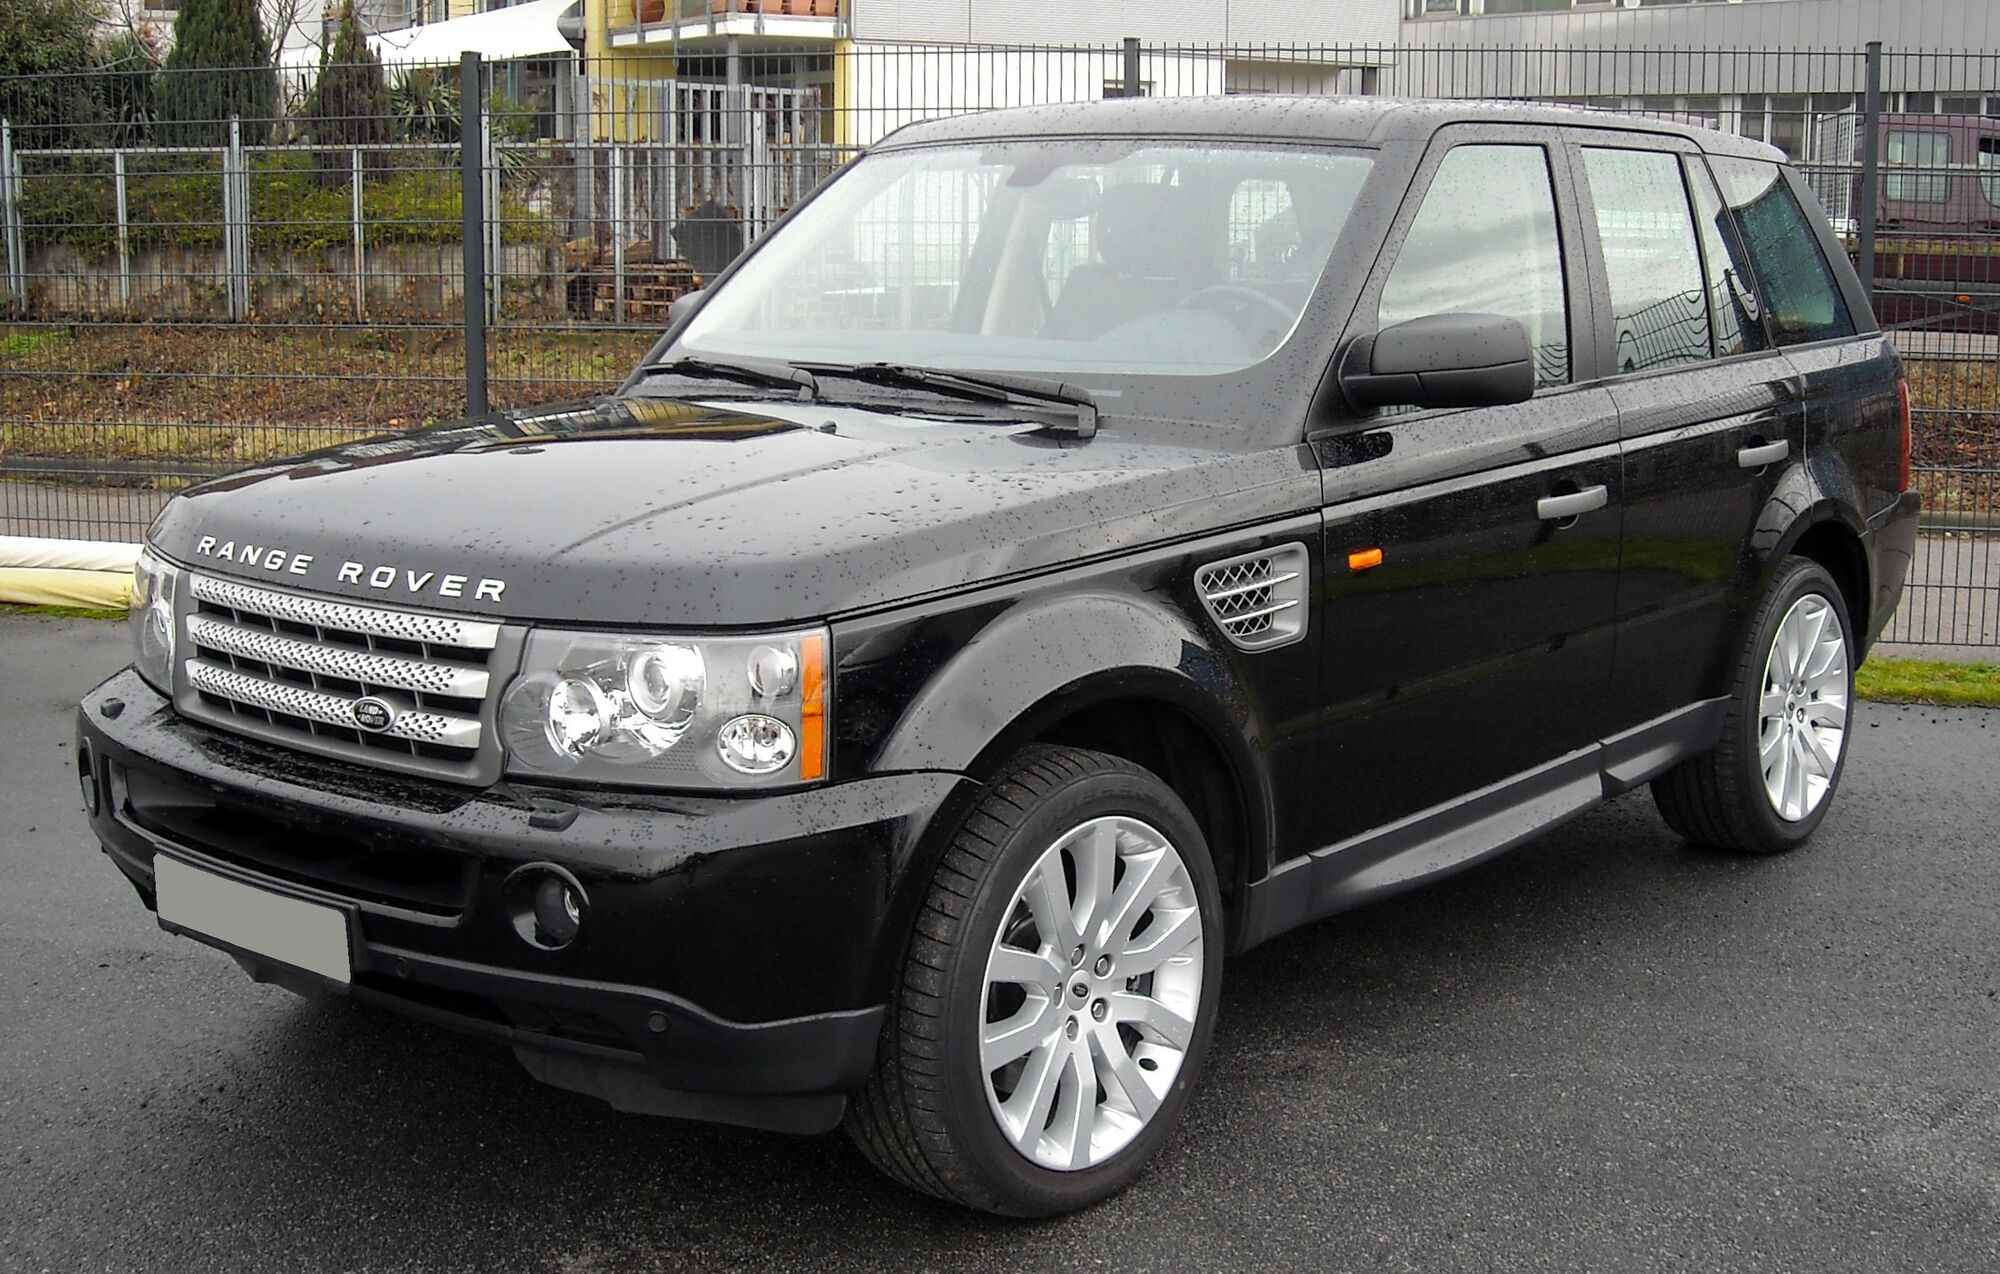 Range Rover Sport Tractor & Construction Plant Wiki